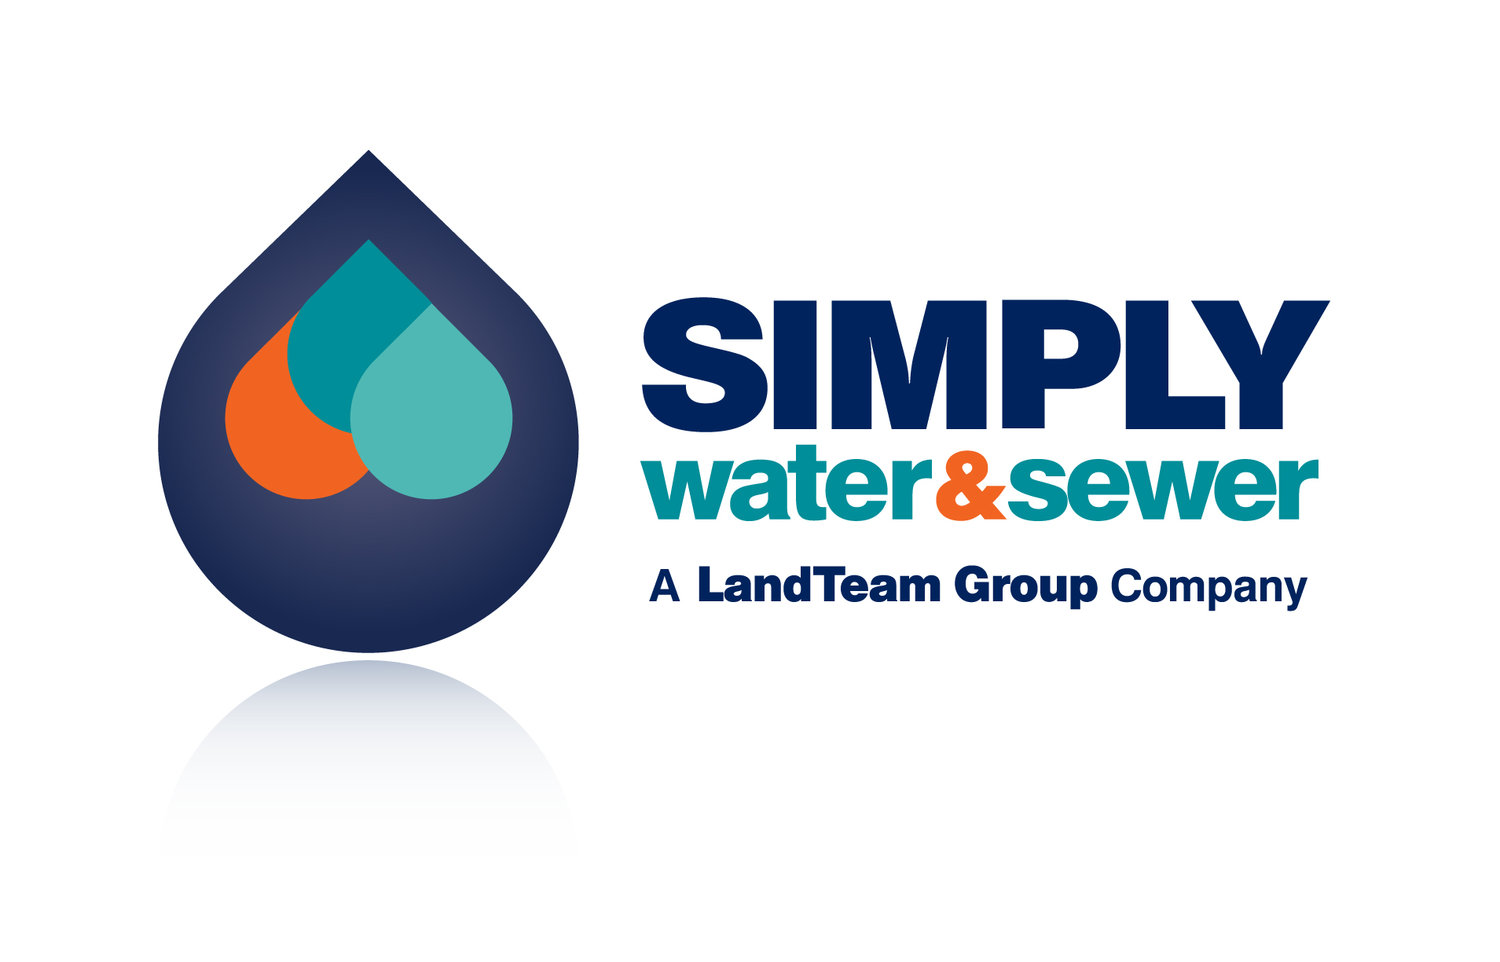 Simply Water & Sewer